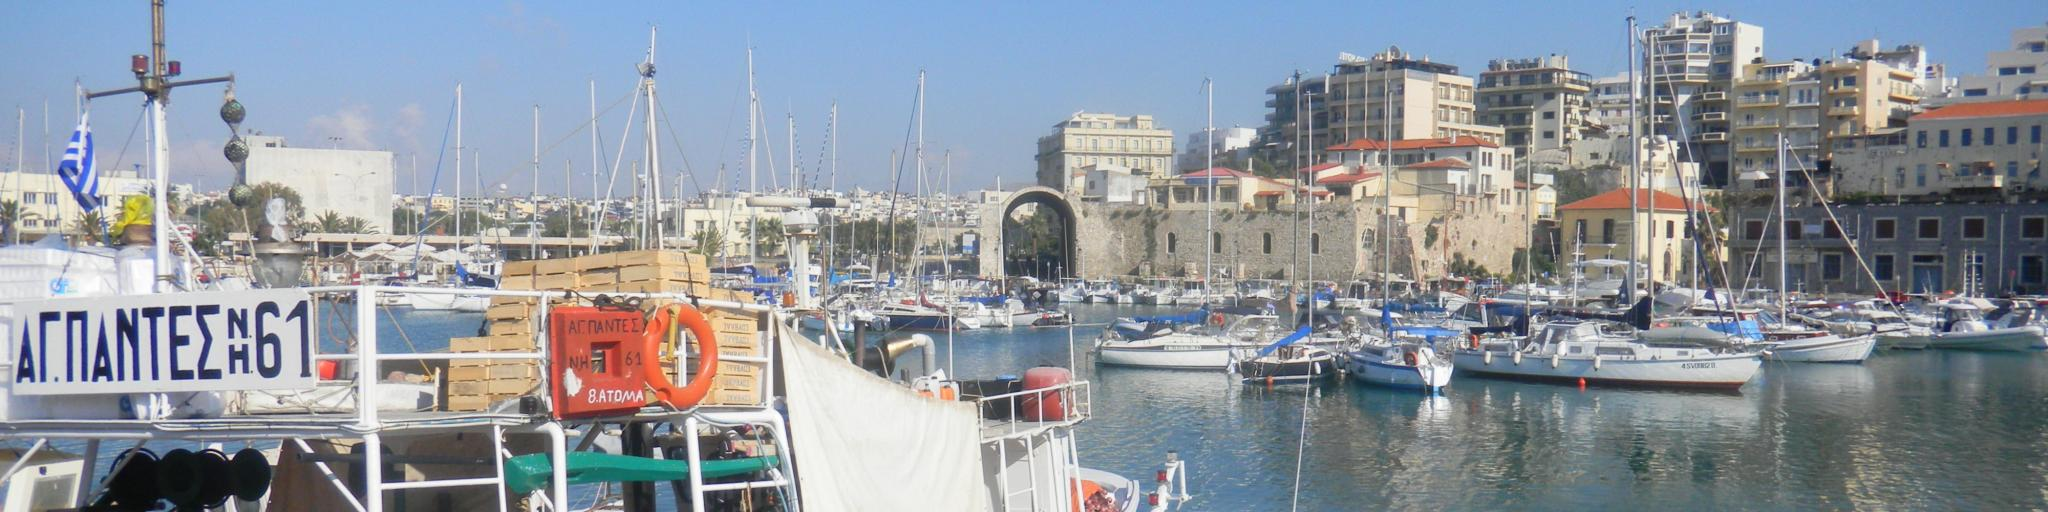 Harbour in Heraklion, Crete, Greece